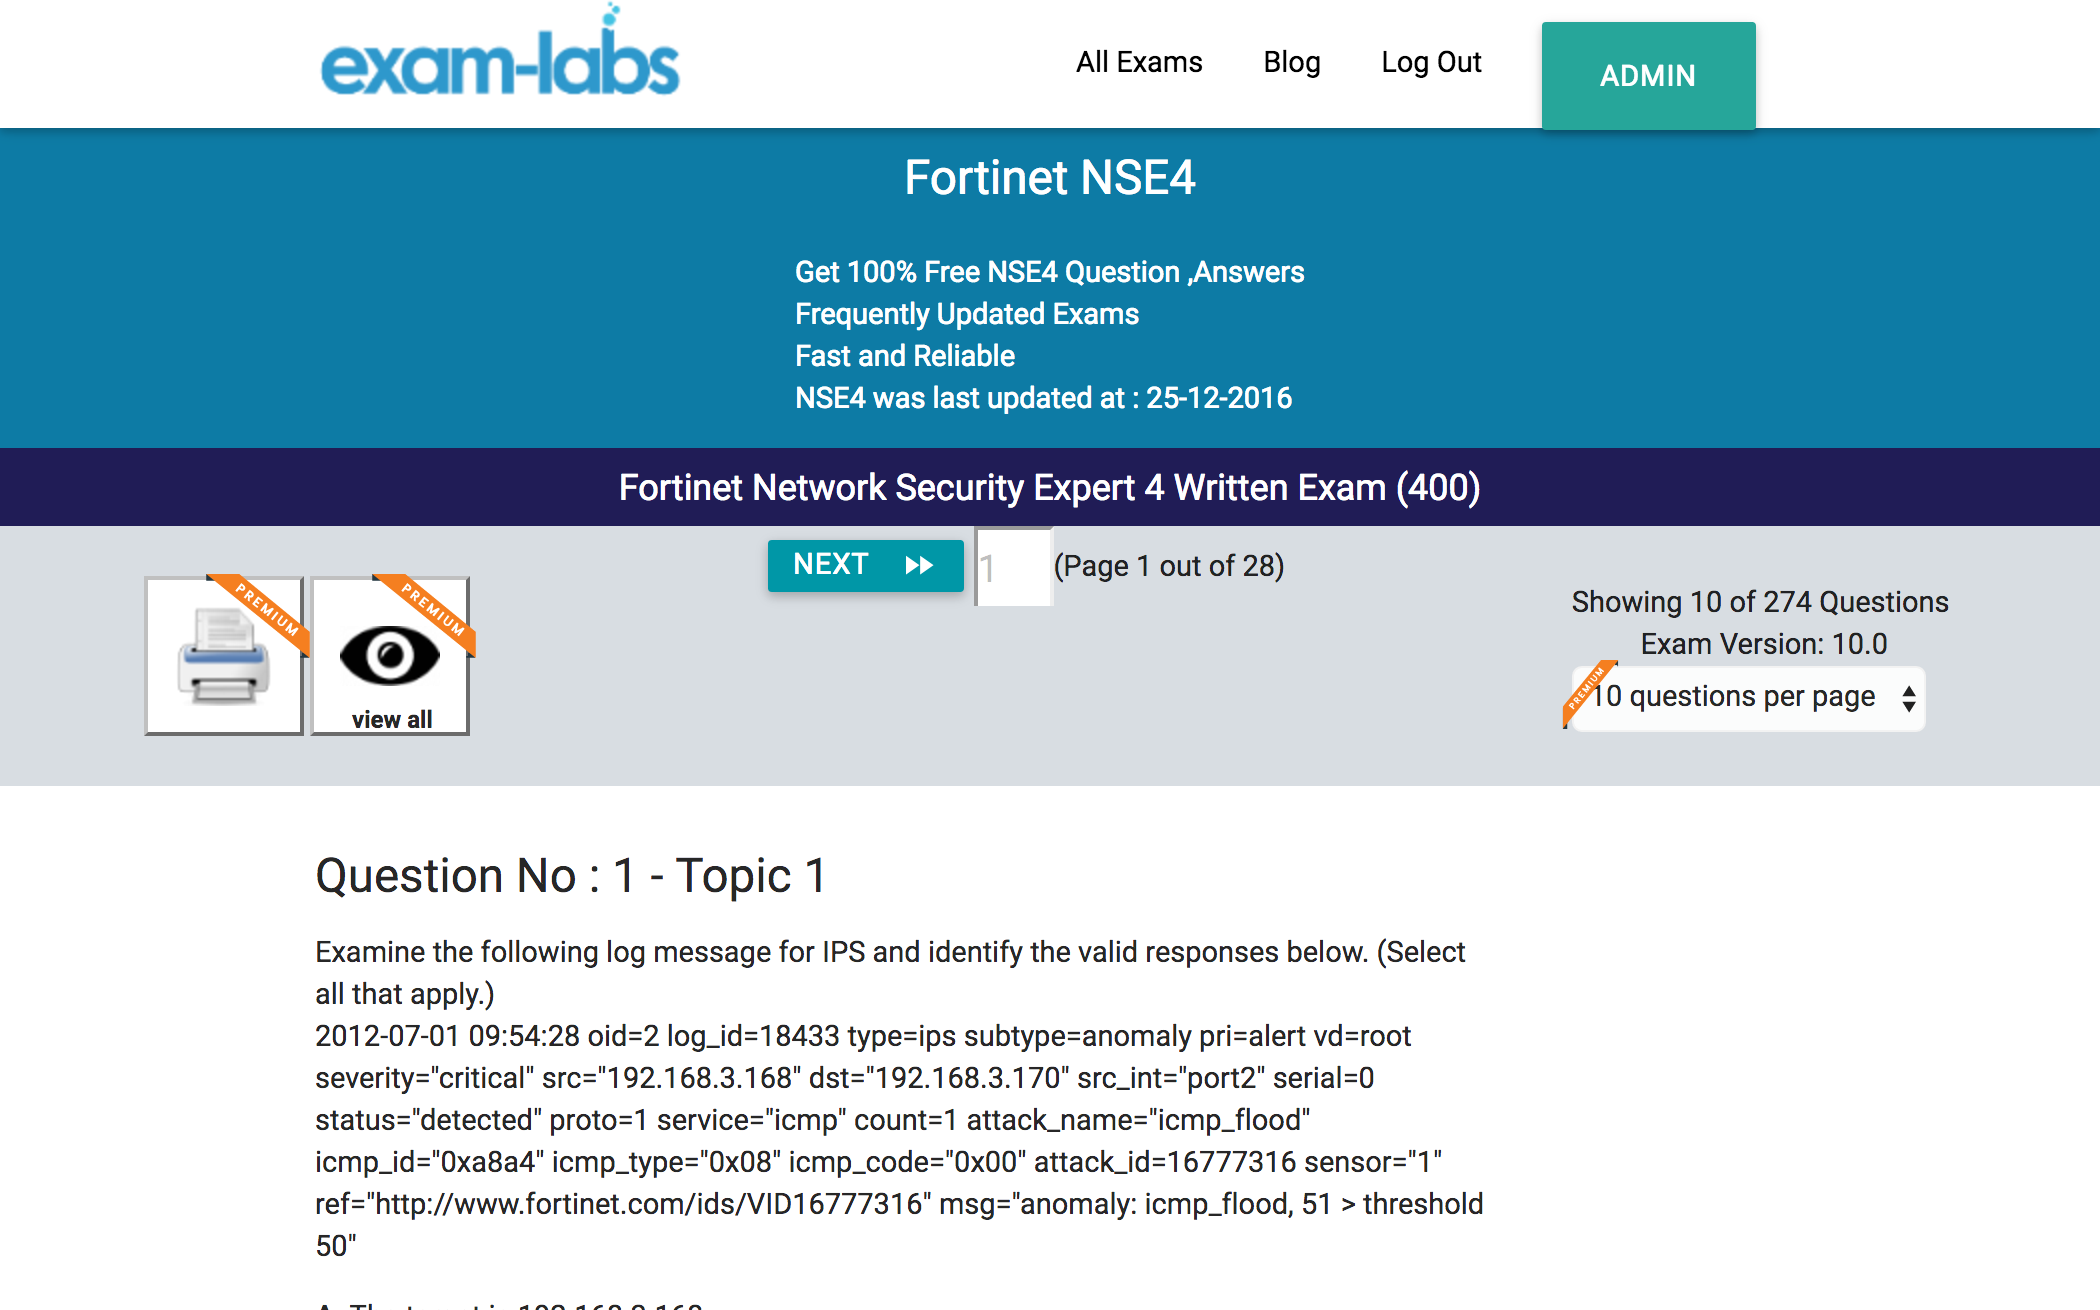 NSE4 - Fortinet Practice Exam Questions - 100% Free | Exam-Labs